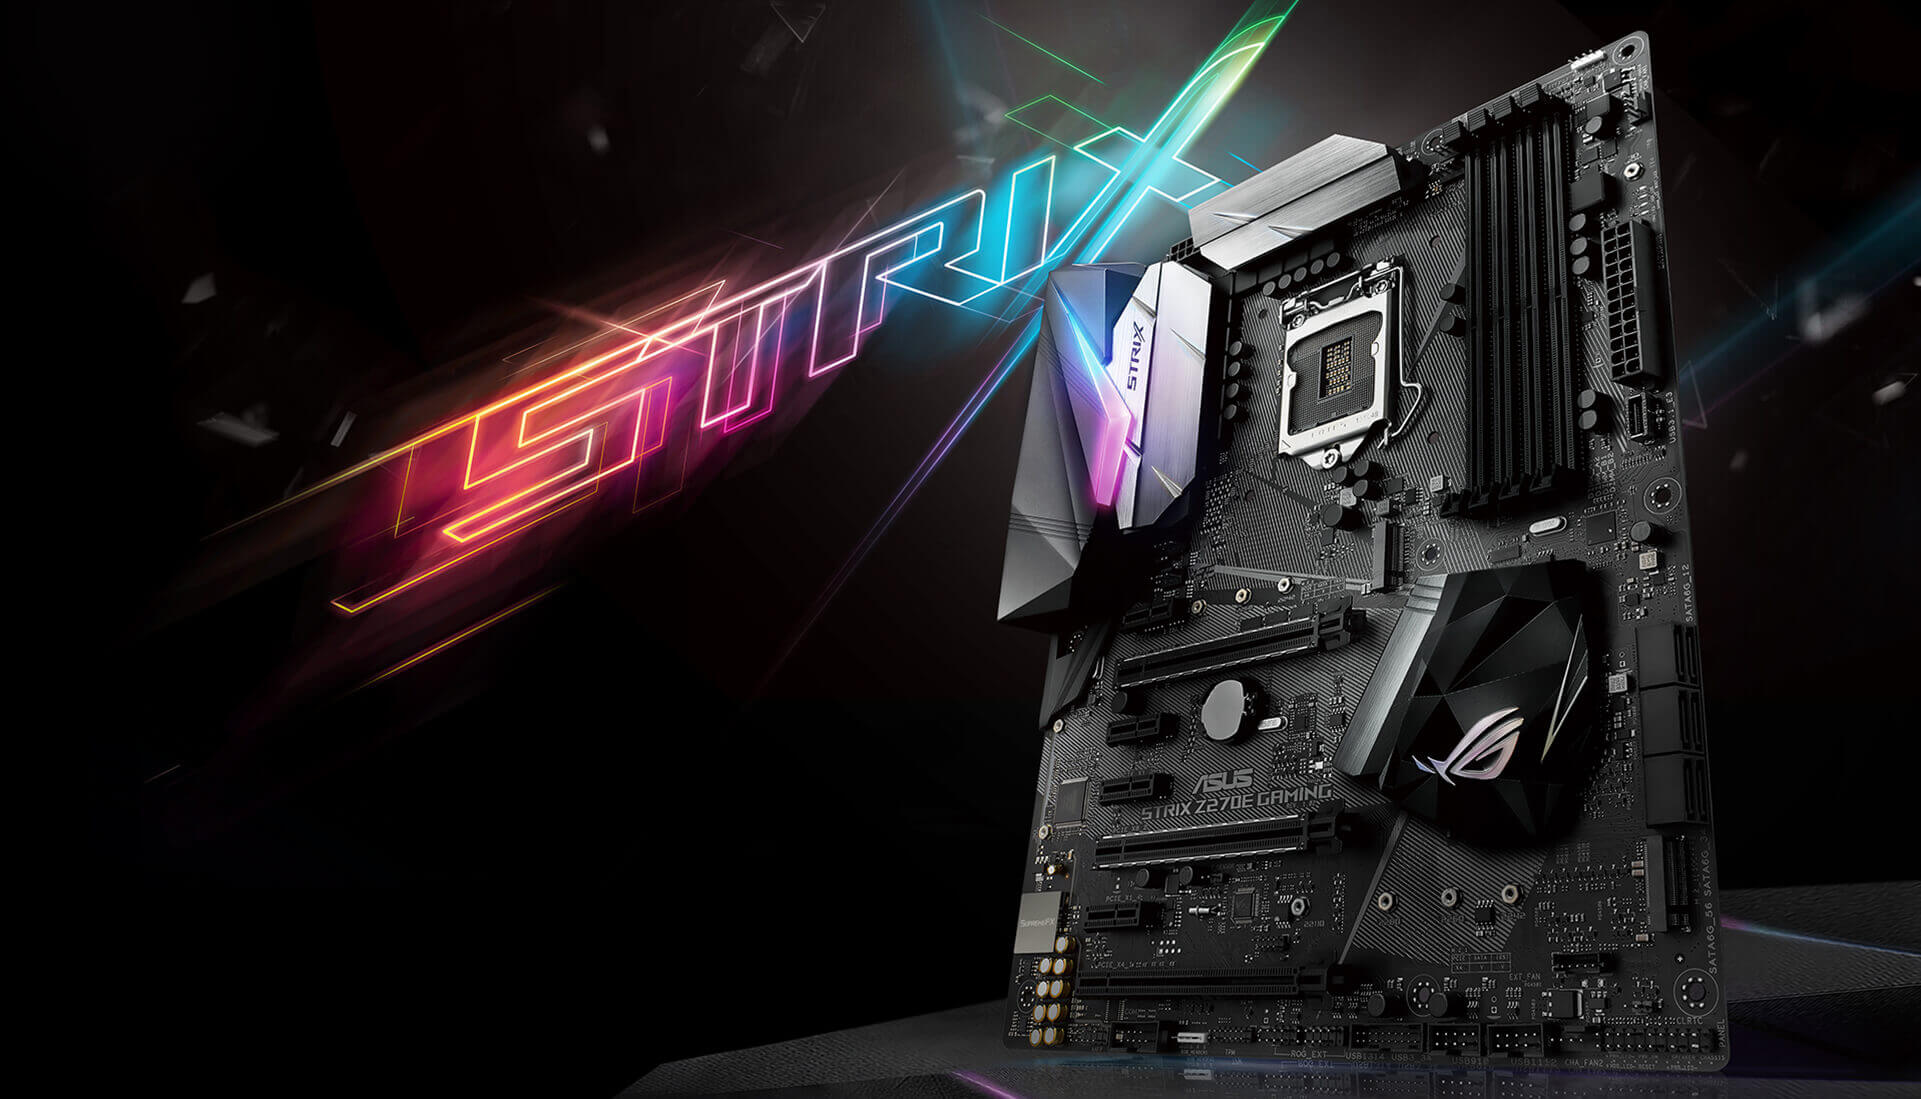 https://www.asus.com/websites/global/products/dbHksGBreBRGHFBy/img/kv/strix-z270e.jpg